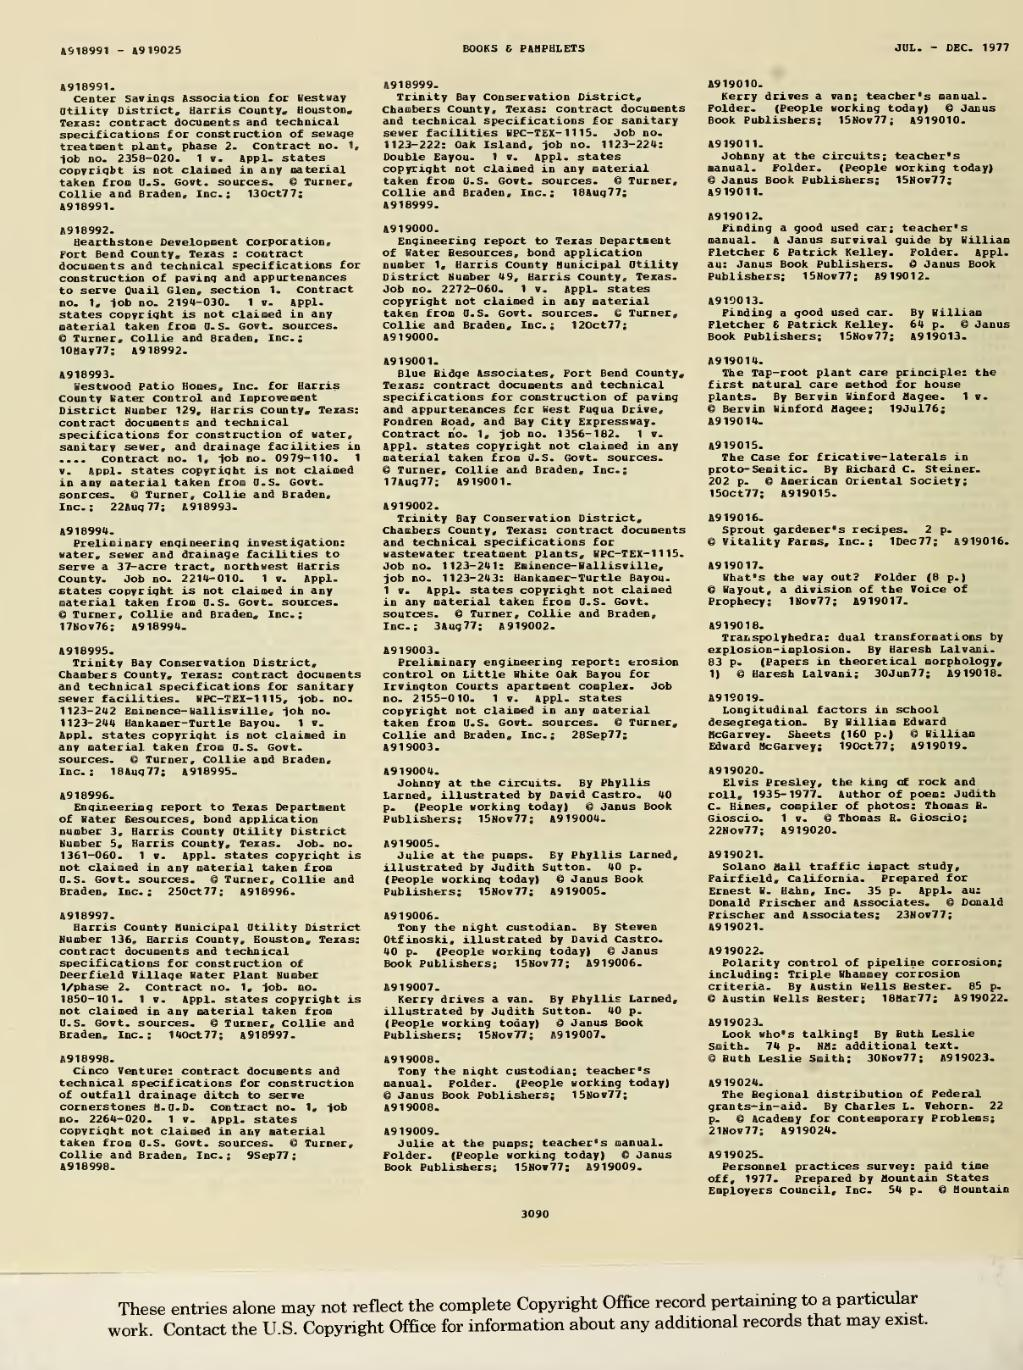 Page:1977 Books and Pamphlets July-Dec djvu/1204 - Wikisource, the